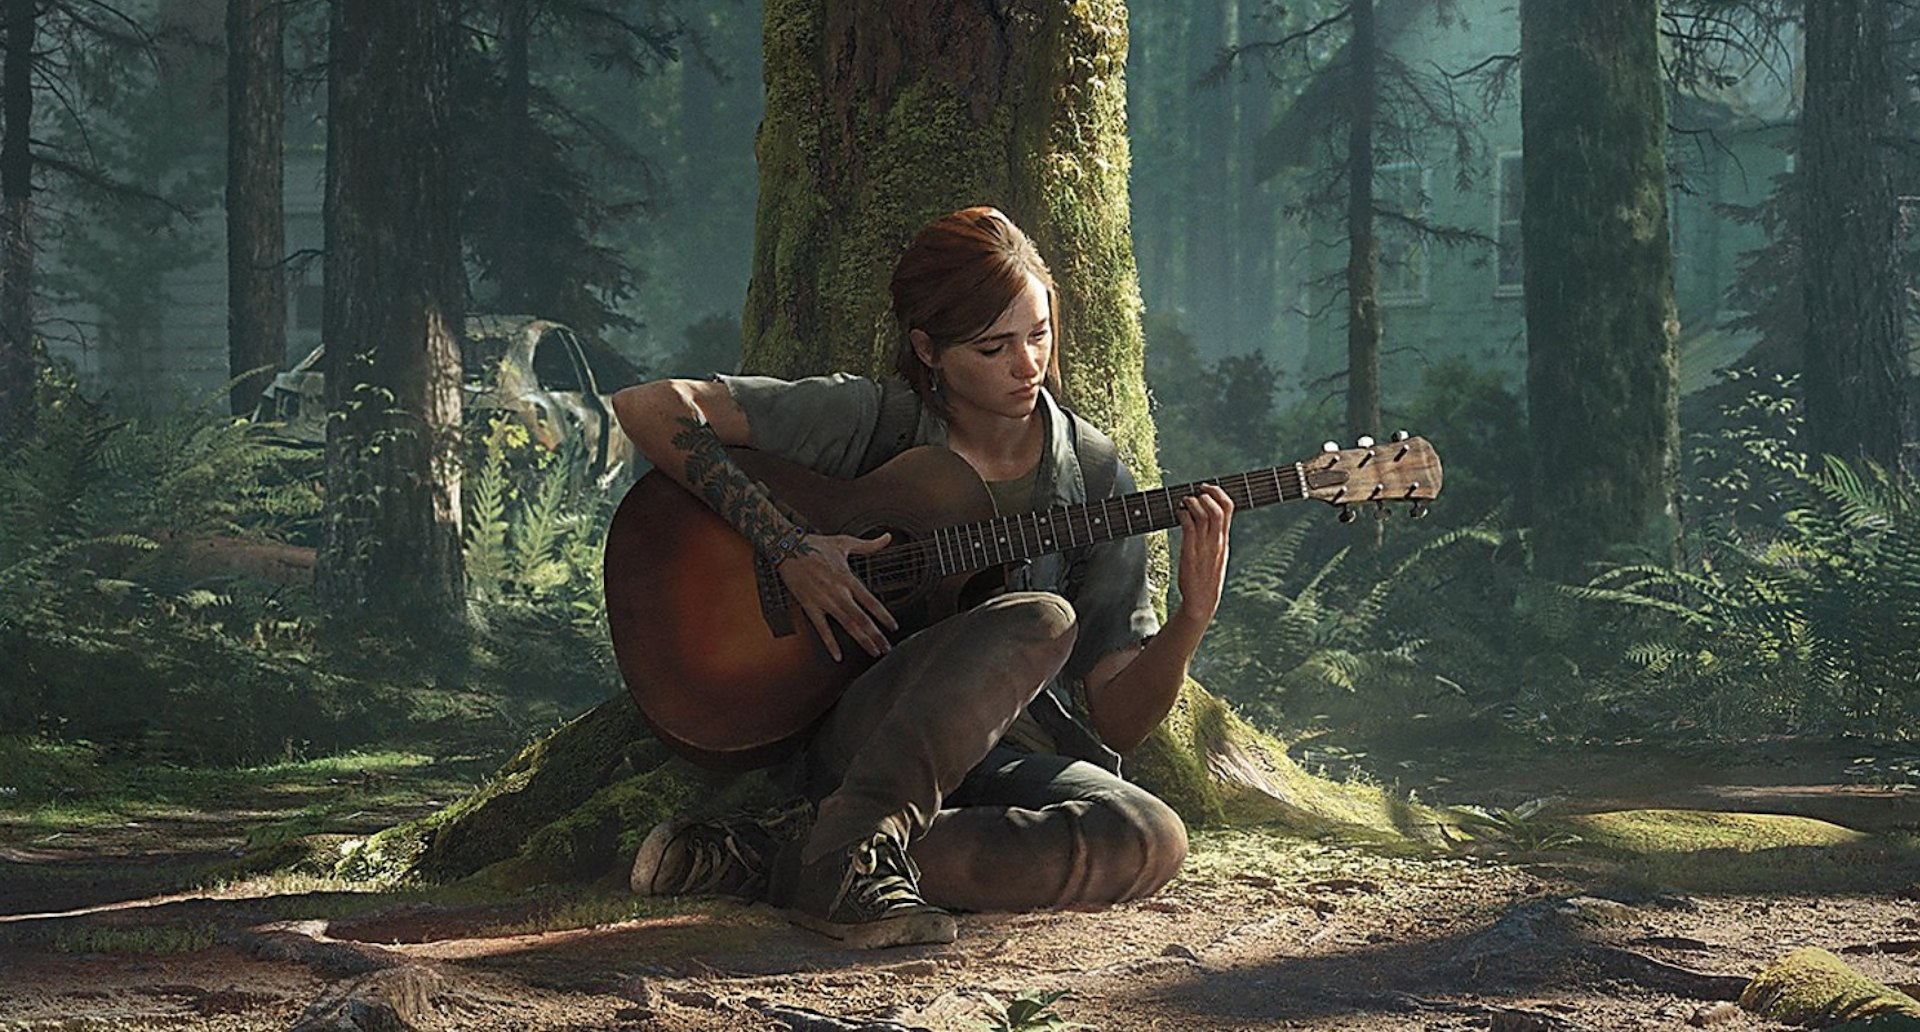 Zoeken naar The Last of Us Part II